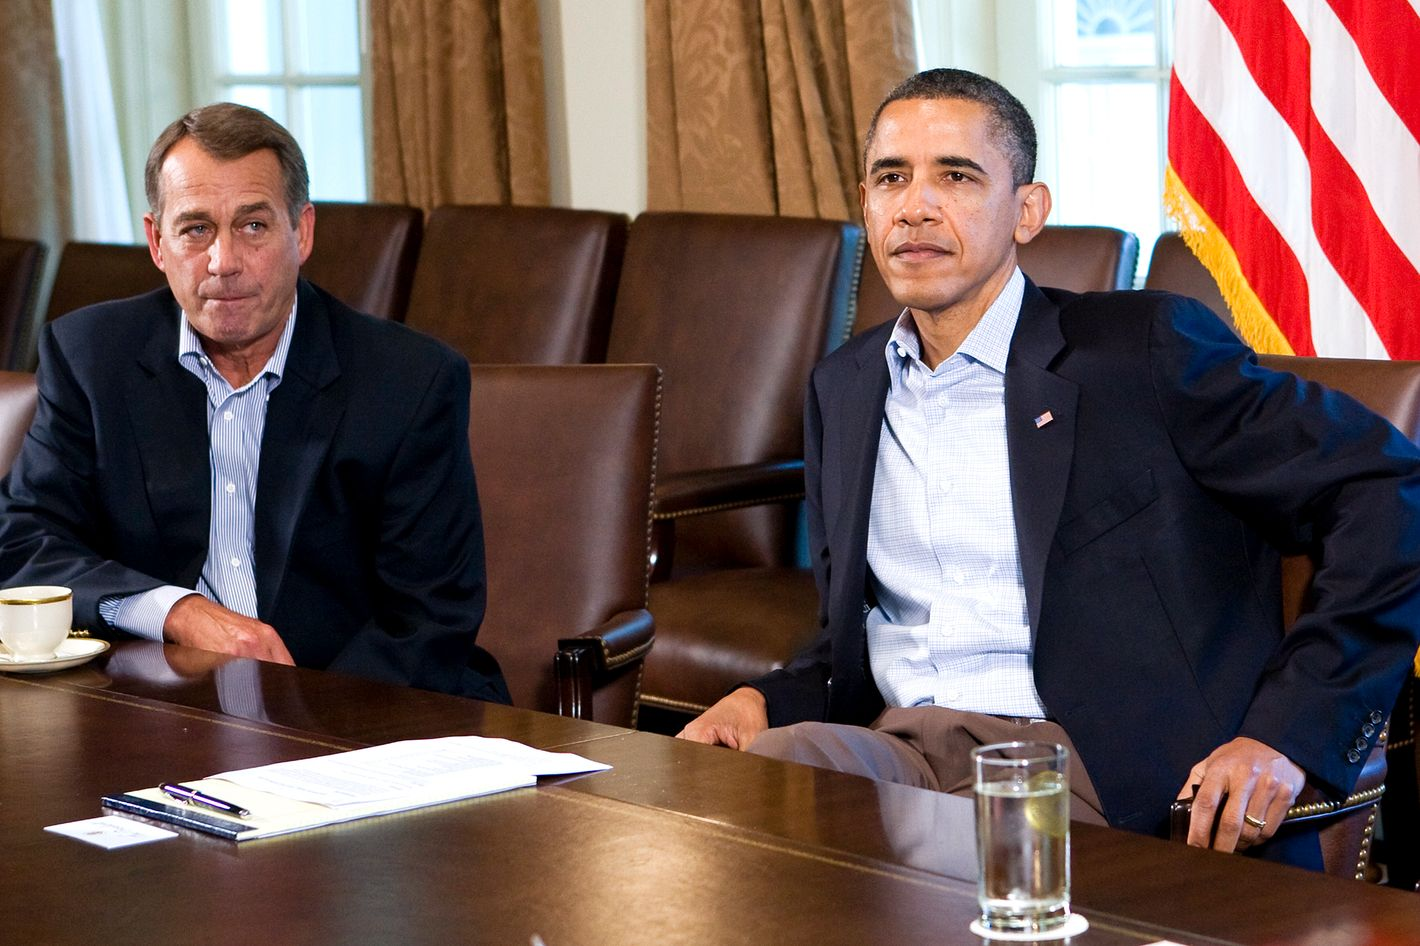 U.S. President Barack Obama (R) meets with Speaker of the House John Boehner (R-OH) (L) in the Cabinet Room of the White House.